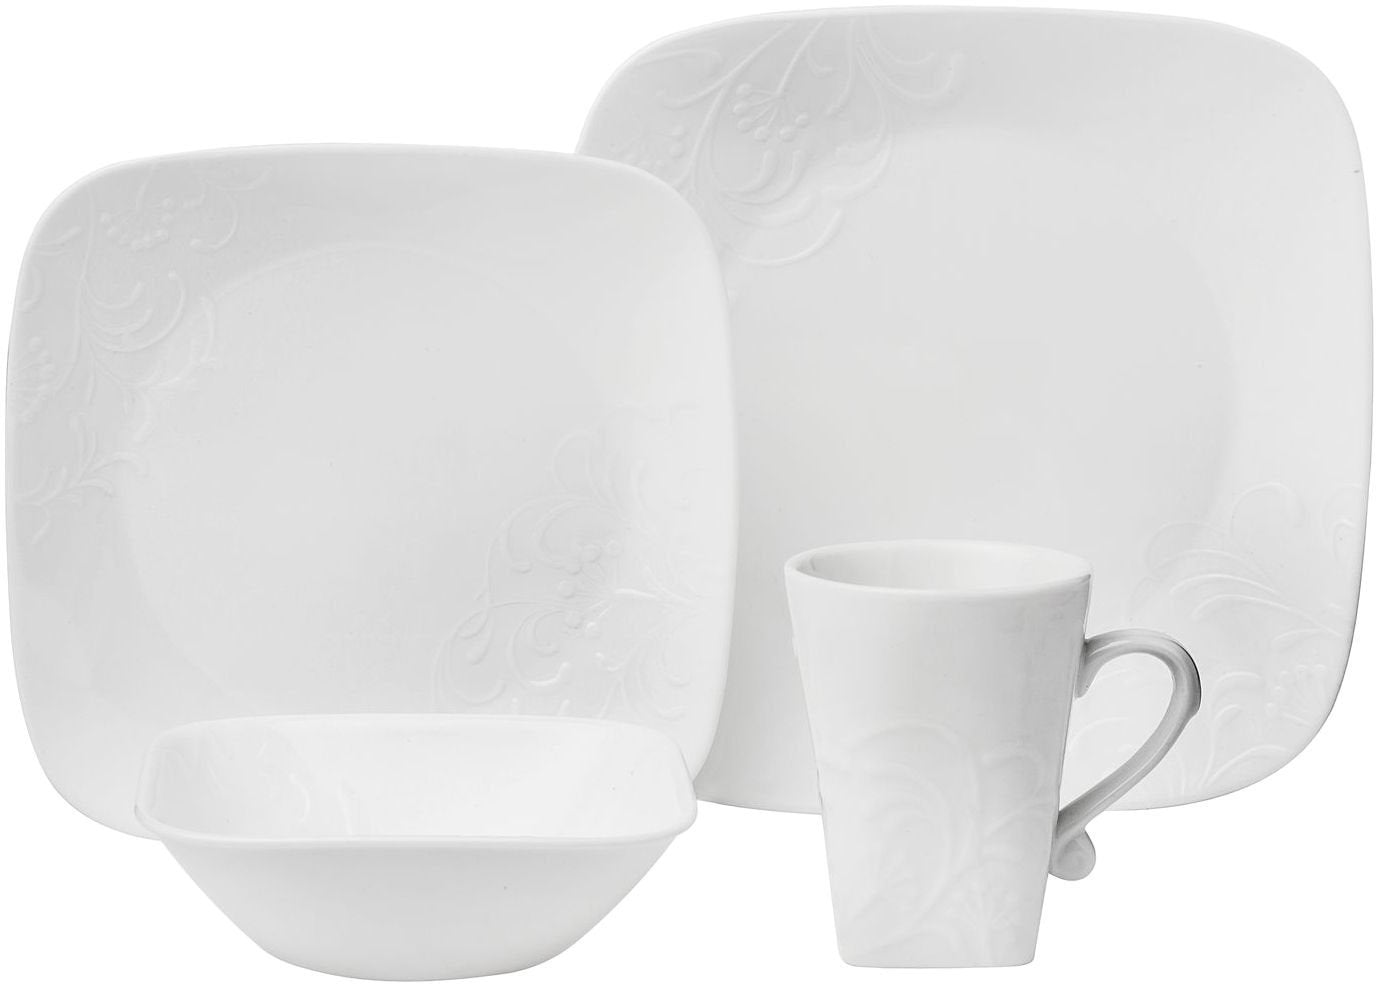 Corelle Boutique Cherish Embossed Square 16-Piece Dinnerware Set, Service for 4